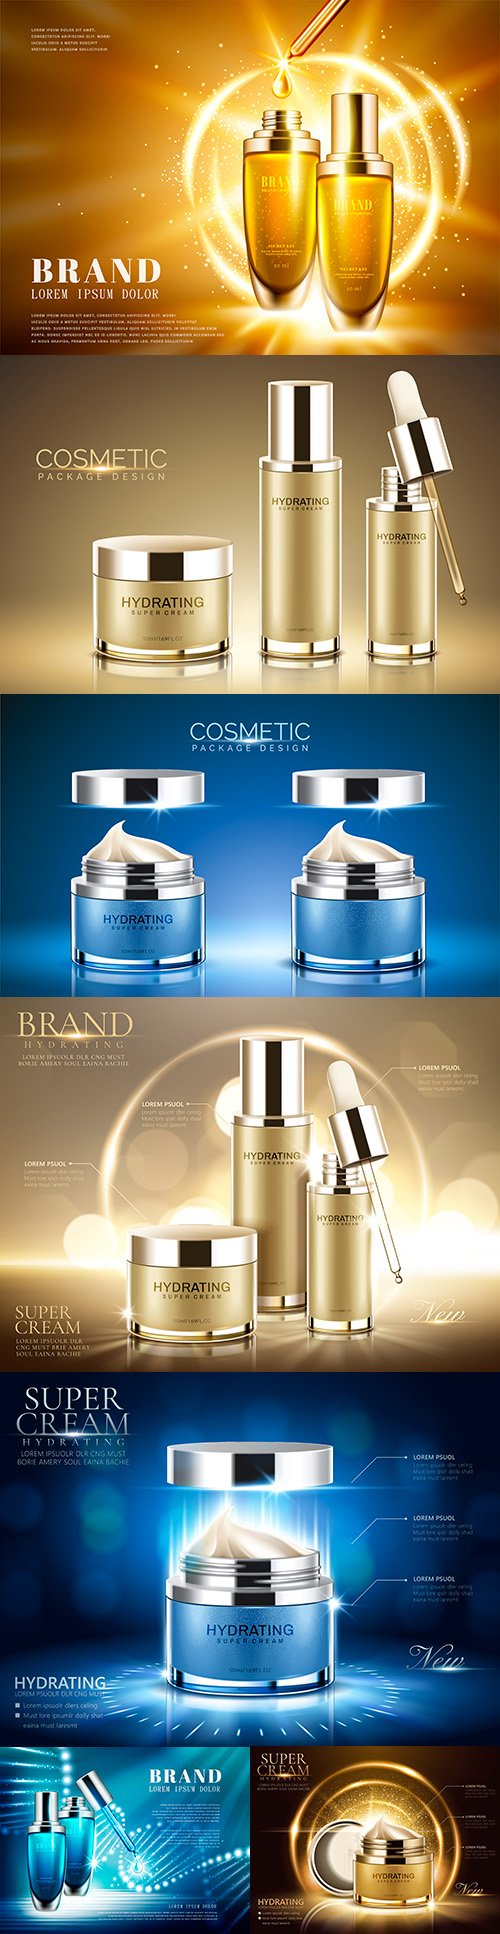 Advertising beauty products with sparkling lights illustration